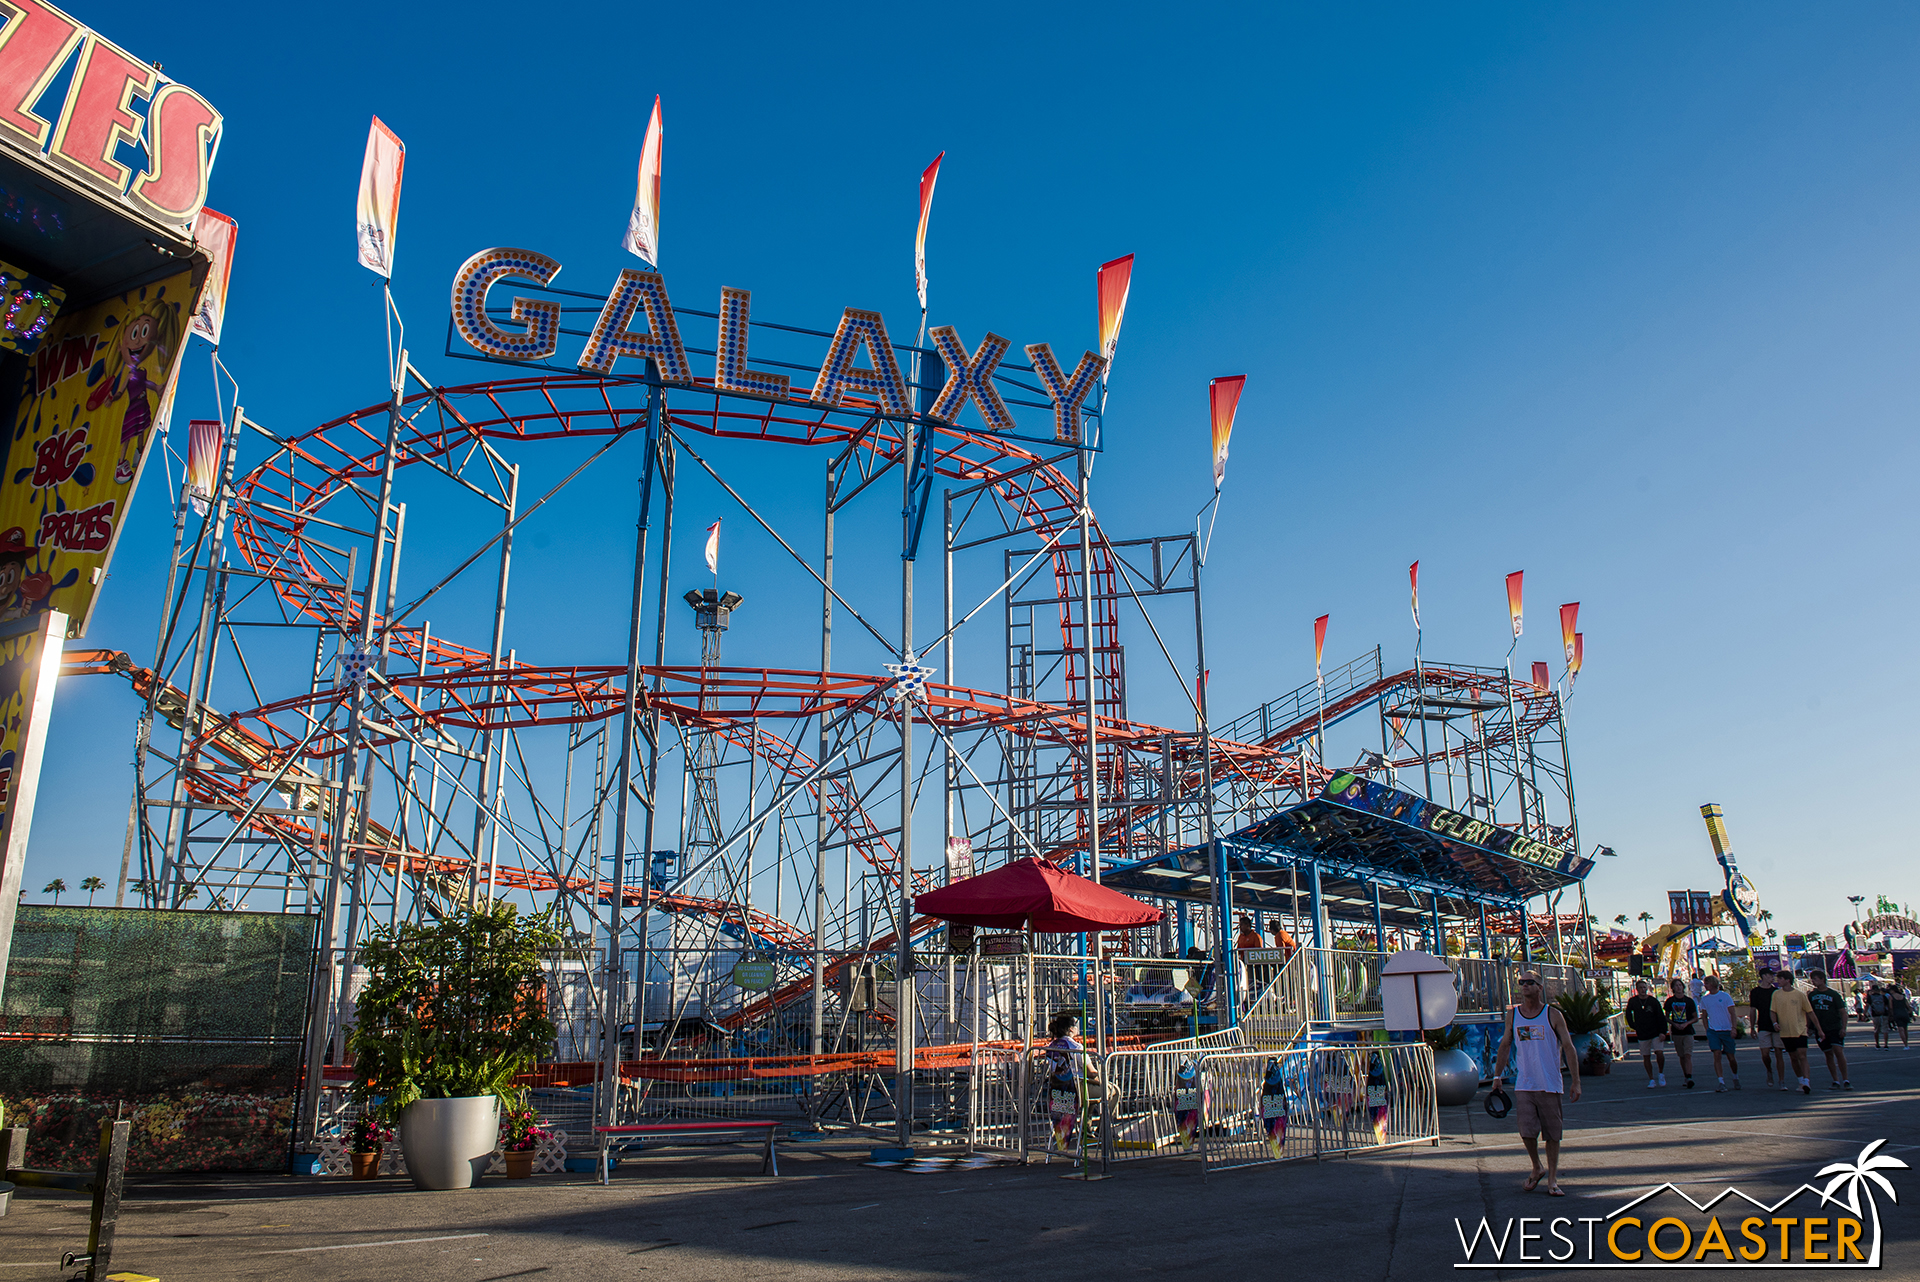 And the venerable Galaxy traveling roller coaster (recently upgraded to a more contemporary model a few years ago).